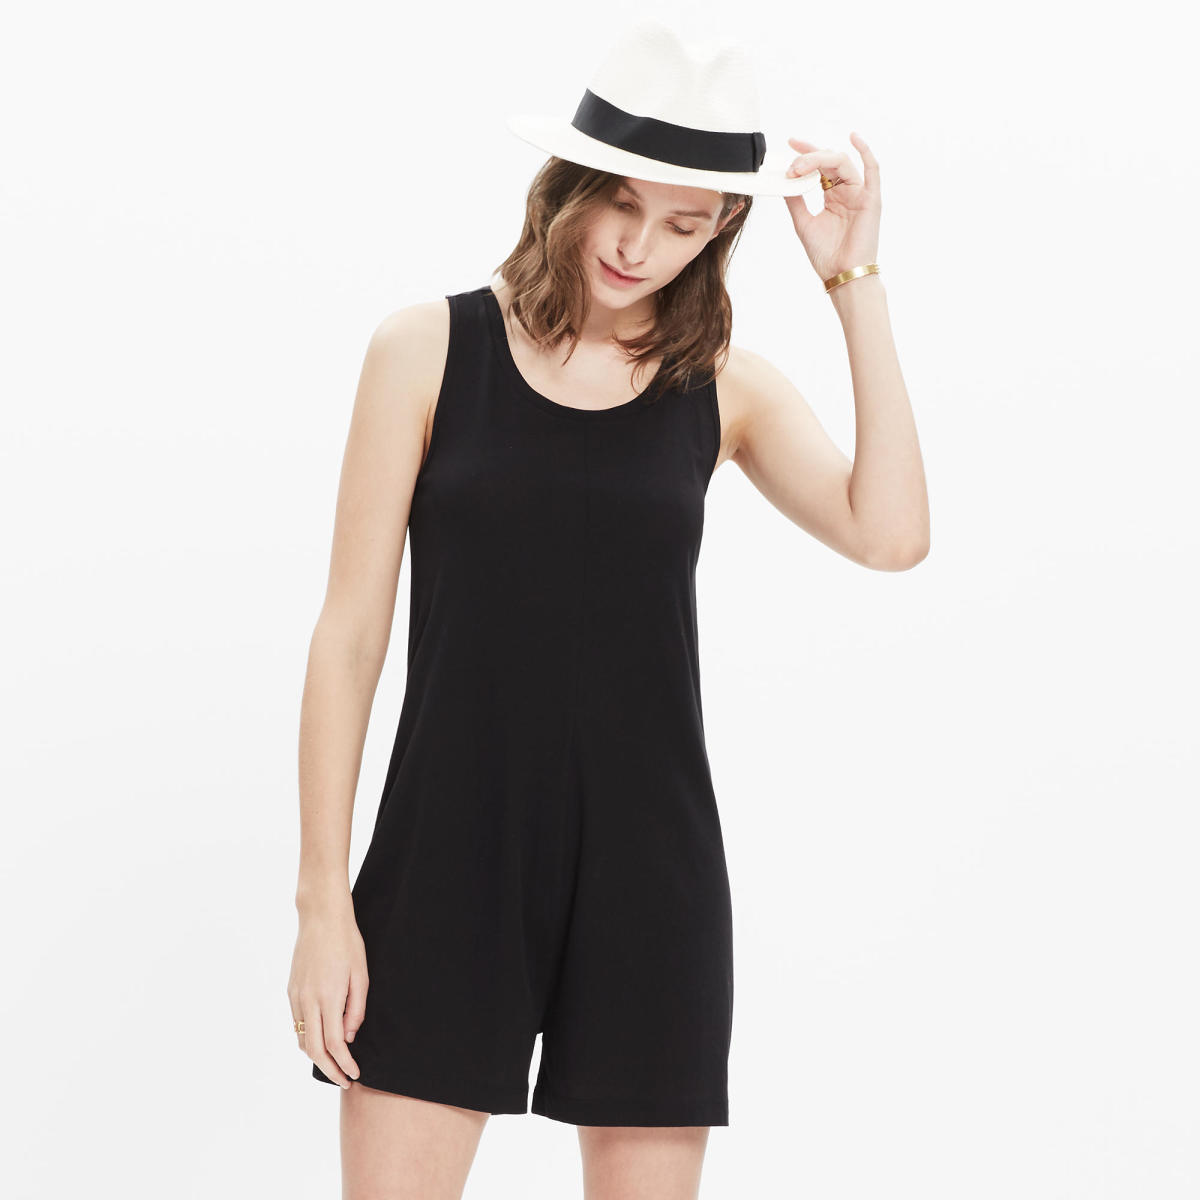 Madewell Jersey Romper, $85, available at Madewell.com.